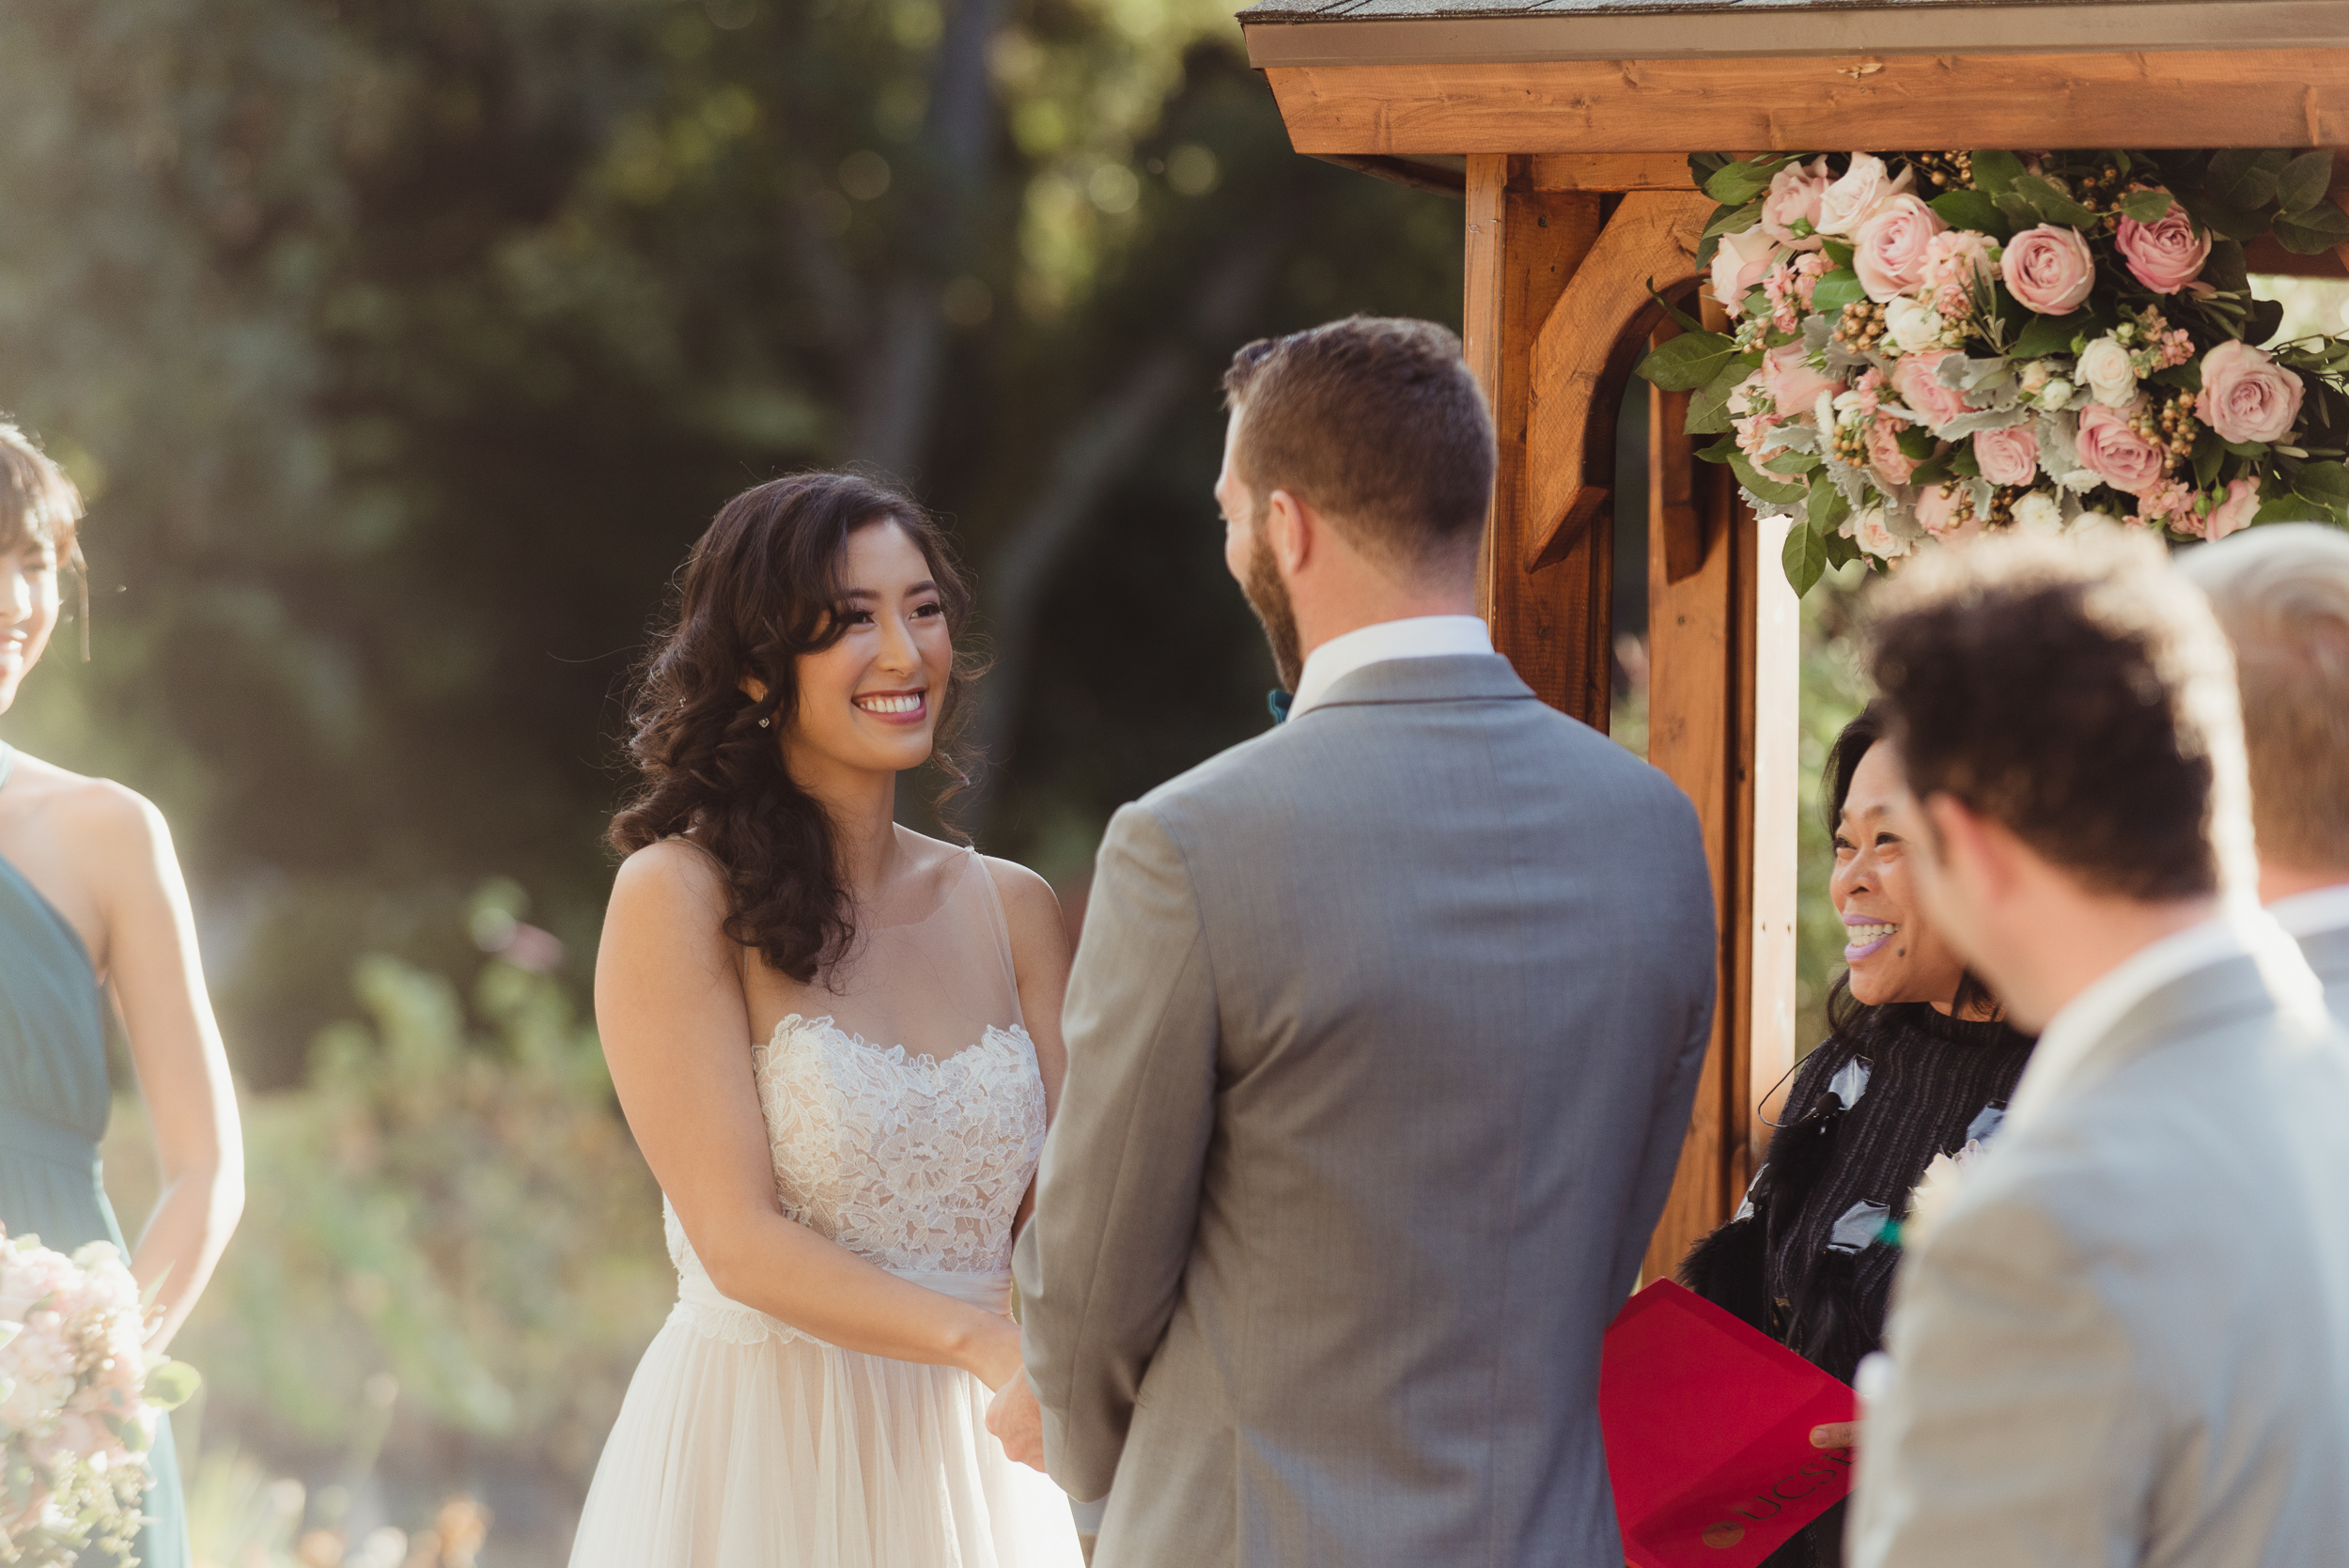 24-sunol-elliston-vineyard-wedding-vivianchen-164.jpg